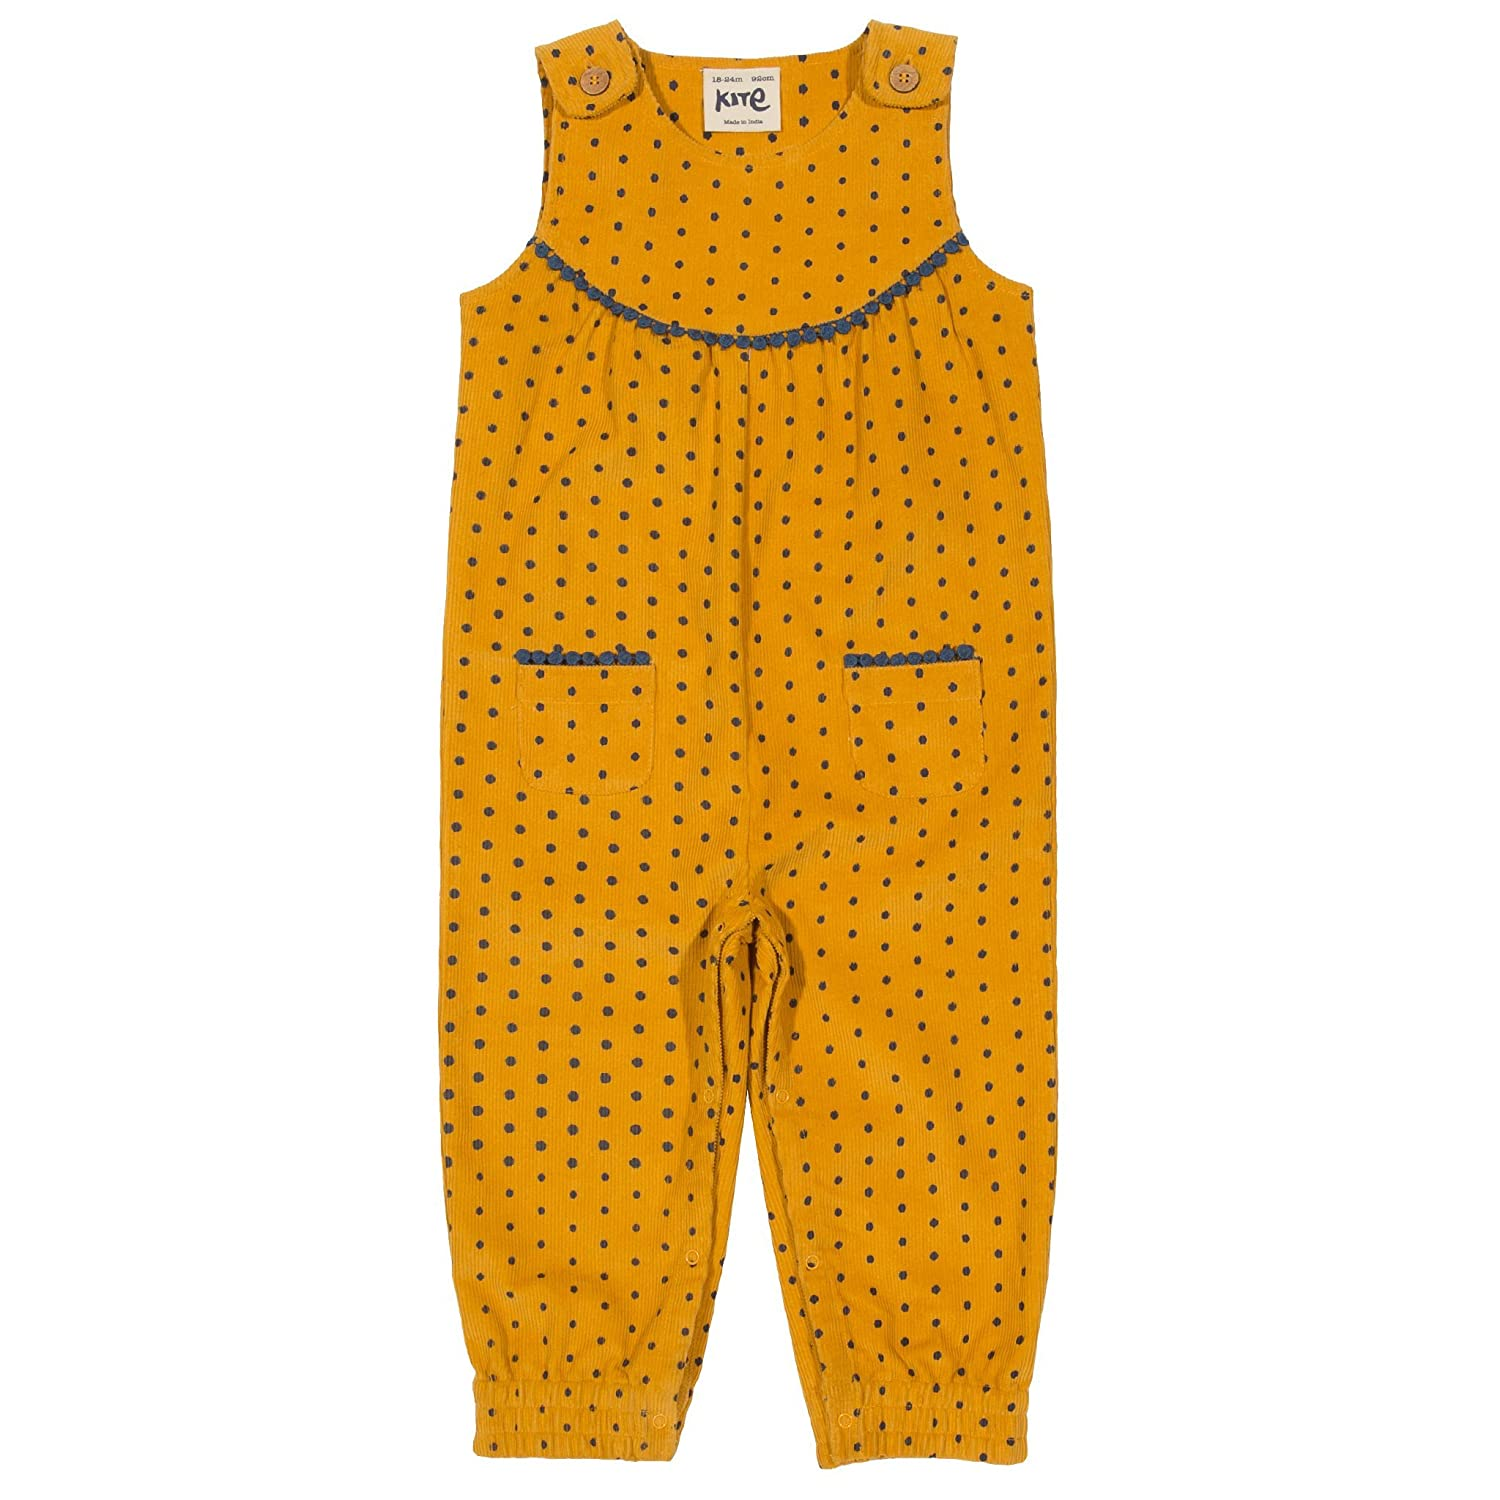 Kite Toddler Girls Polka Dungarees 18-24m 92cm Ochre TG0231